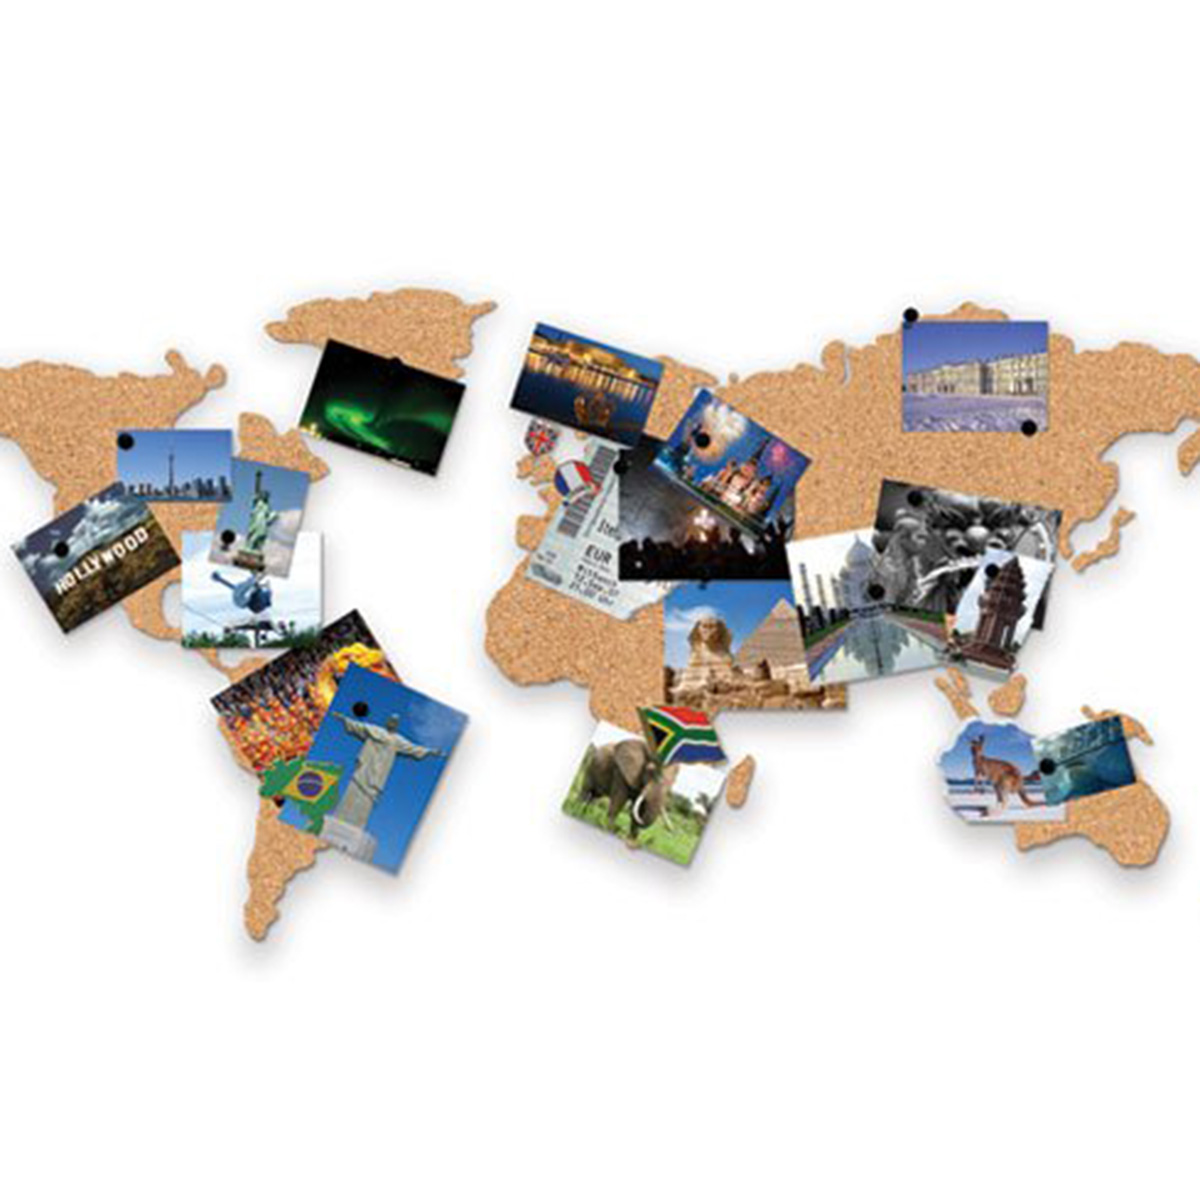 Cork Board World Map Unusual Gifts By Getting Personal